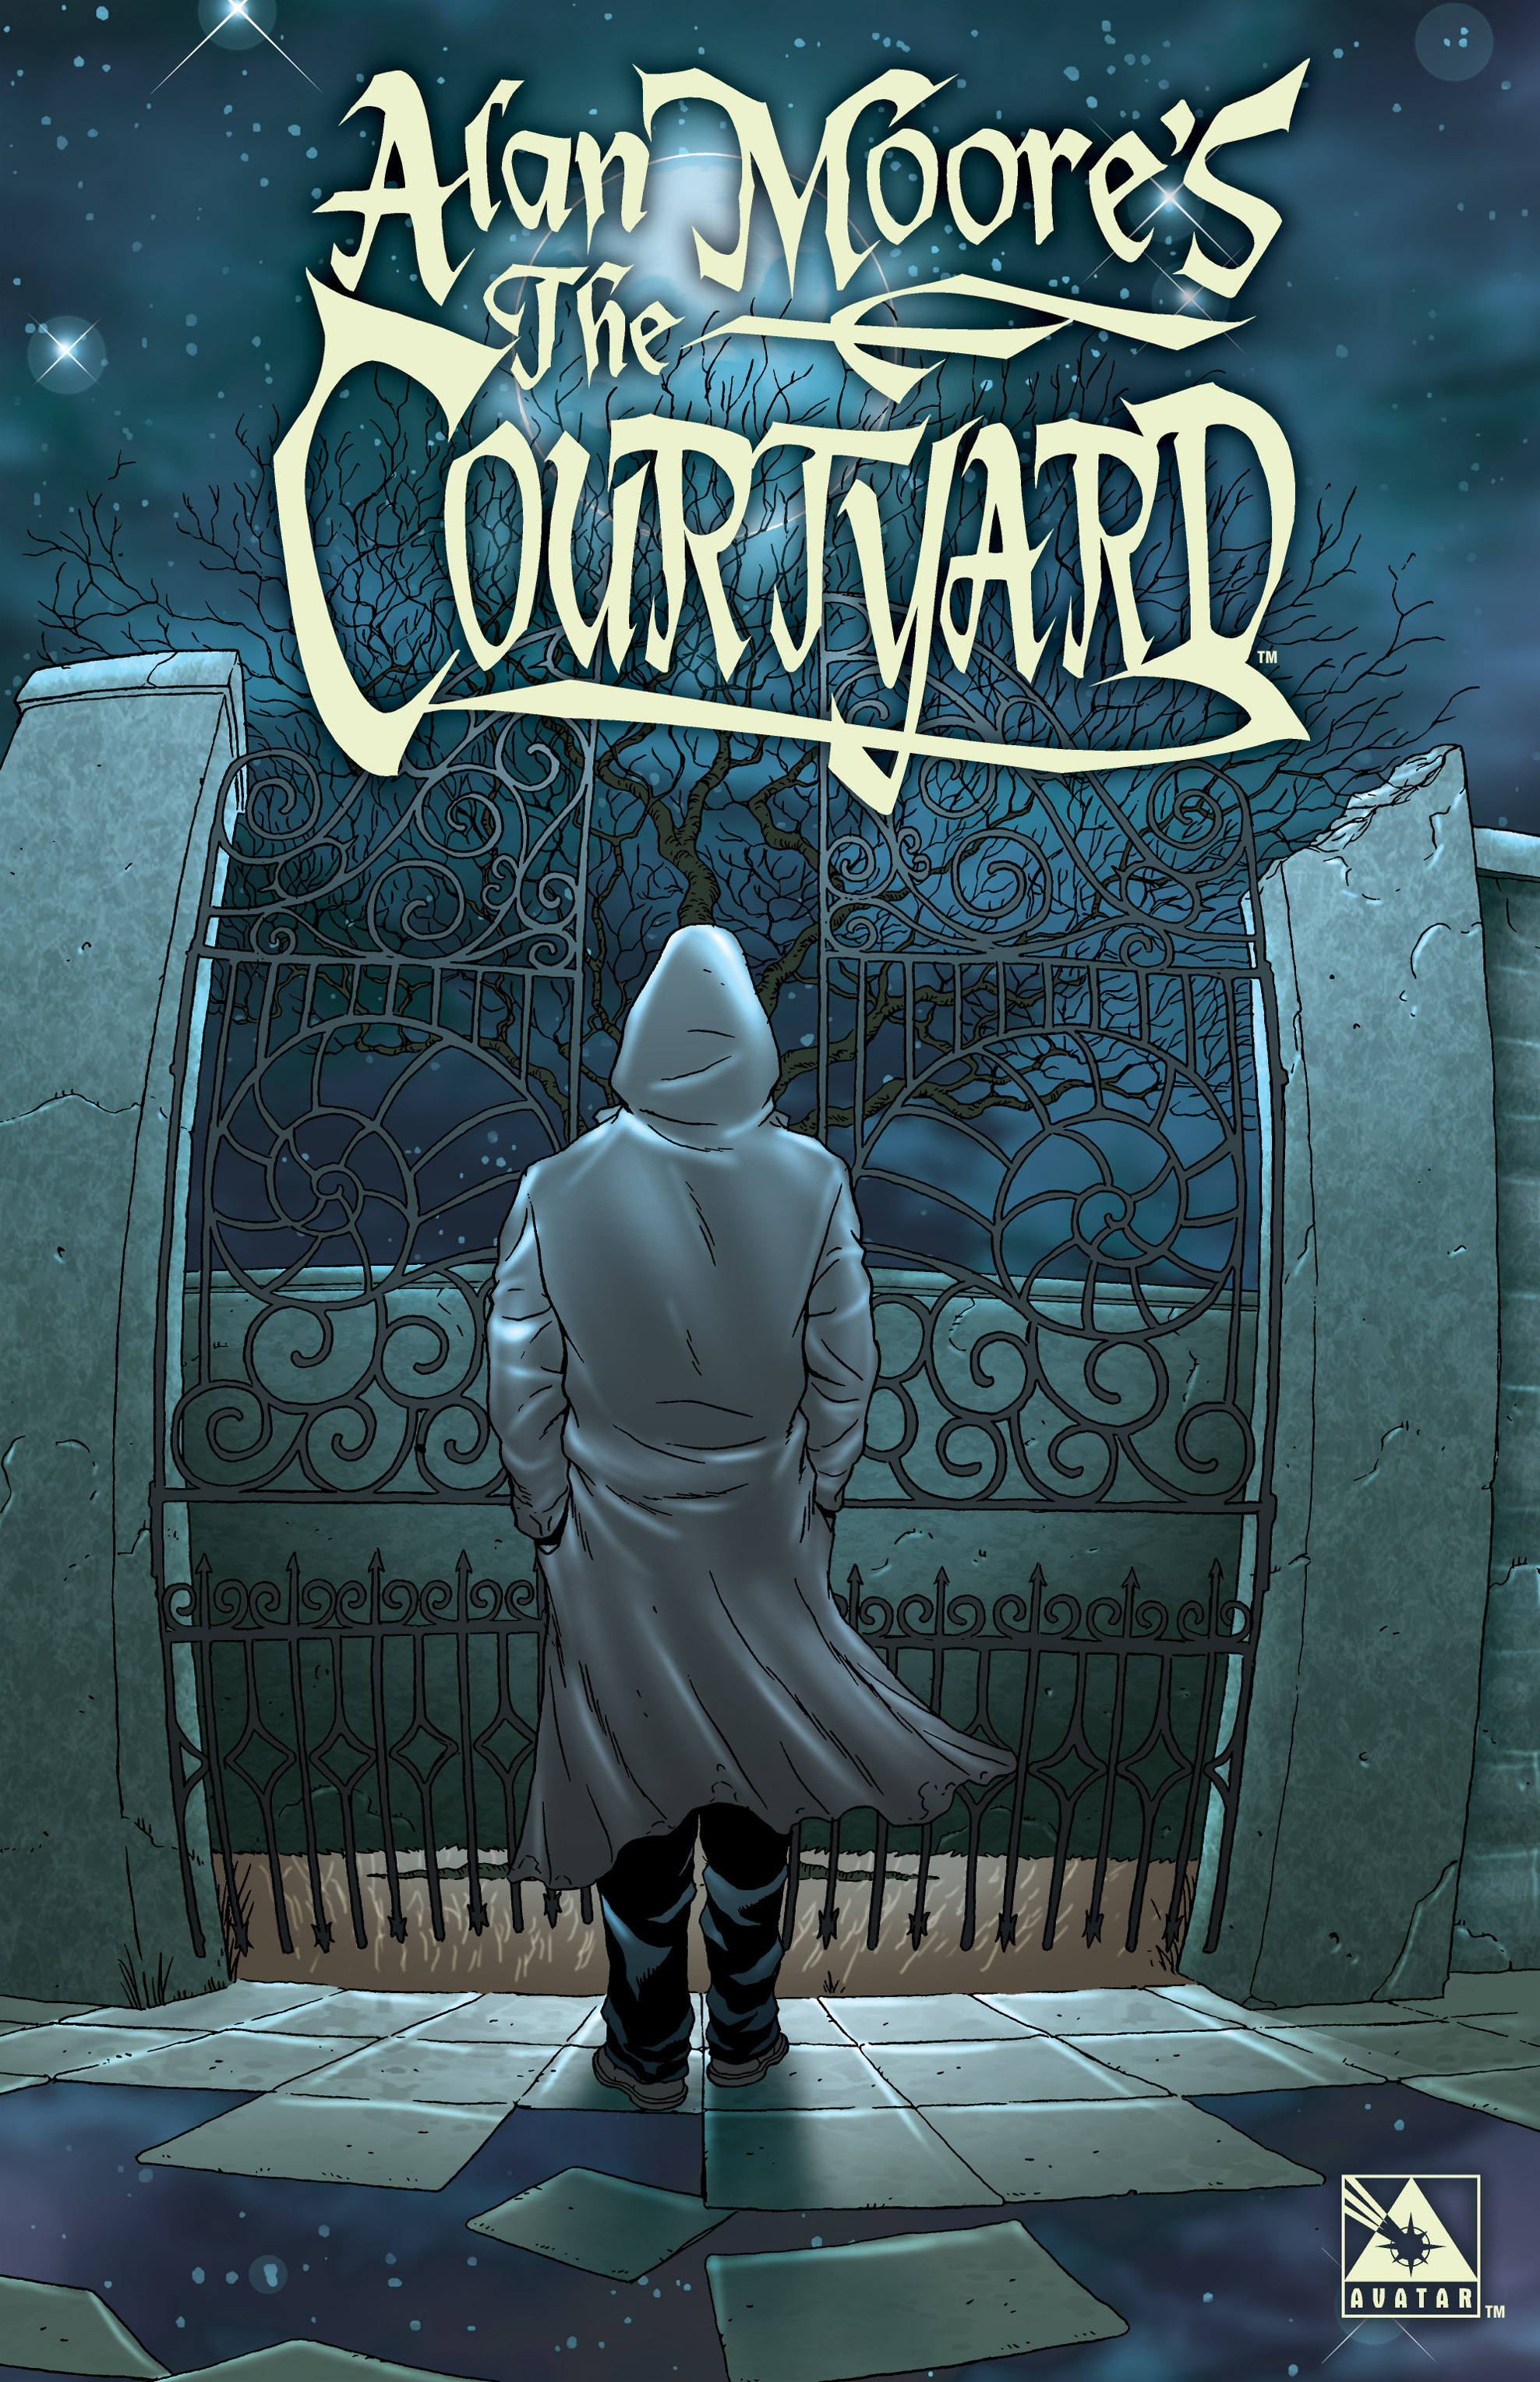 Read online Alan Moore's The Courtyard comic -  Issue # TPB - 1